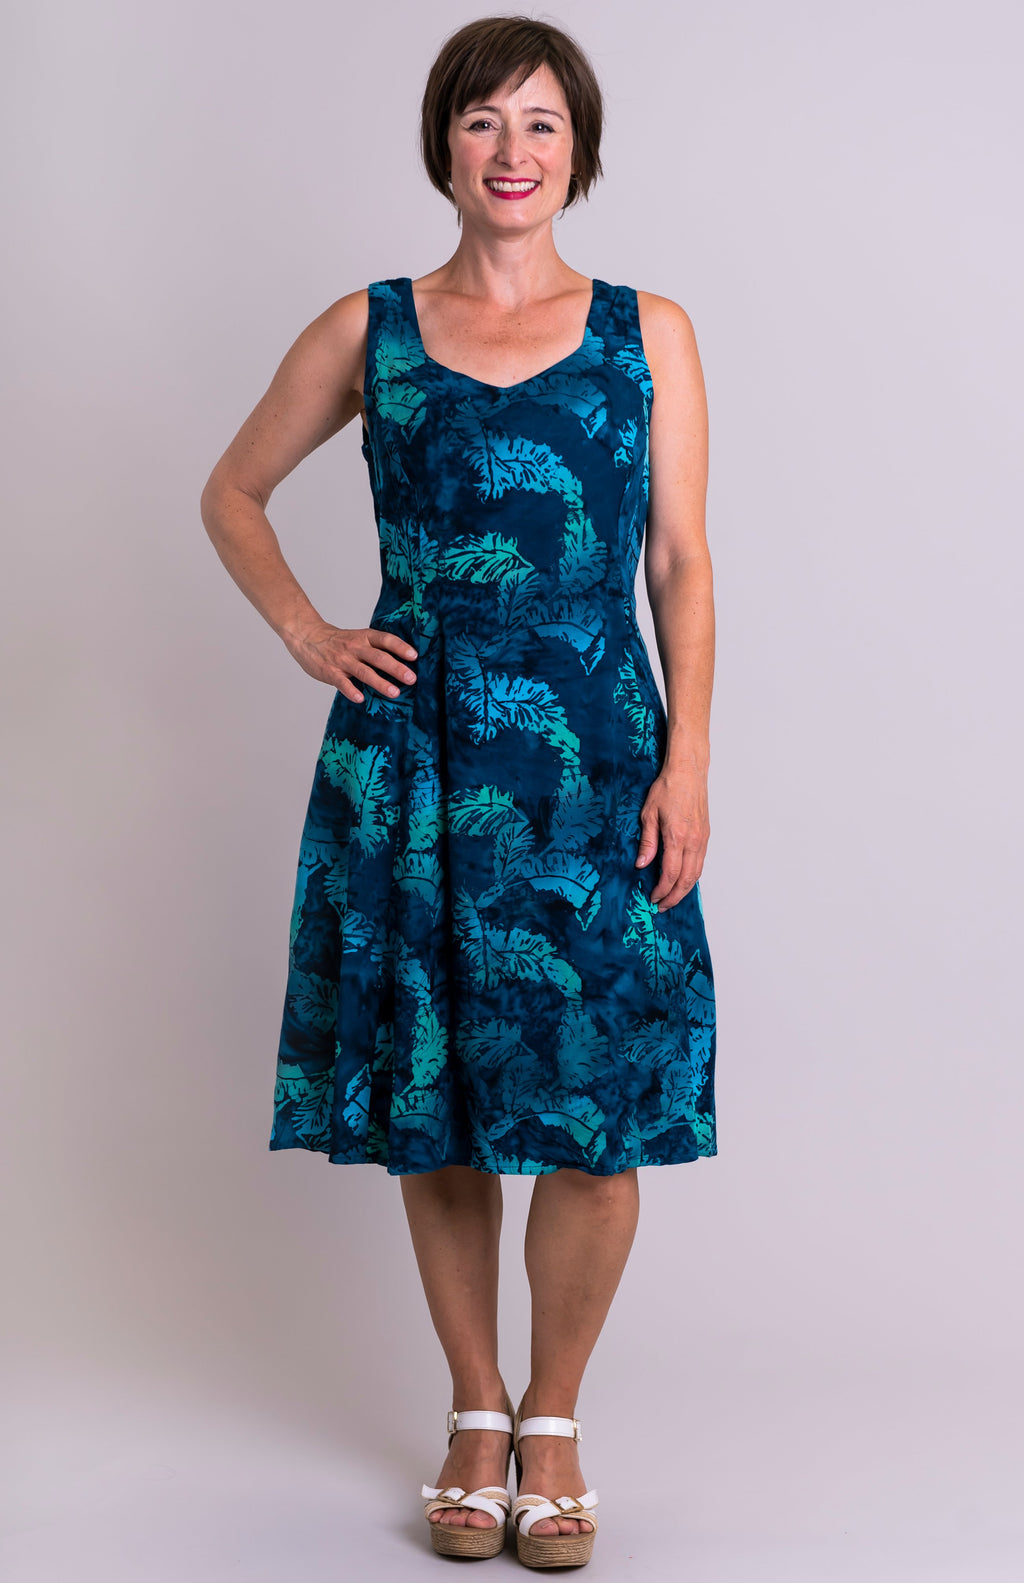 Sweet Sara Dress, Blue Feathers, Batik Art